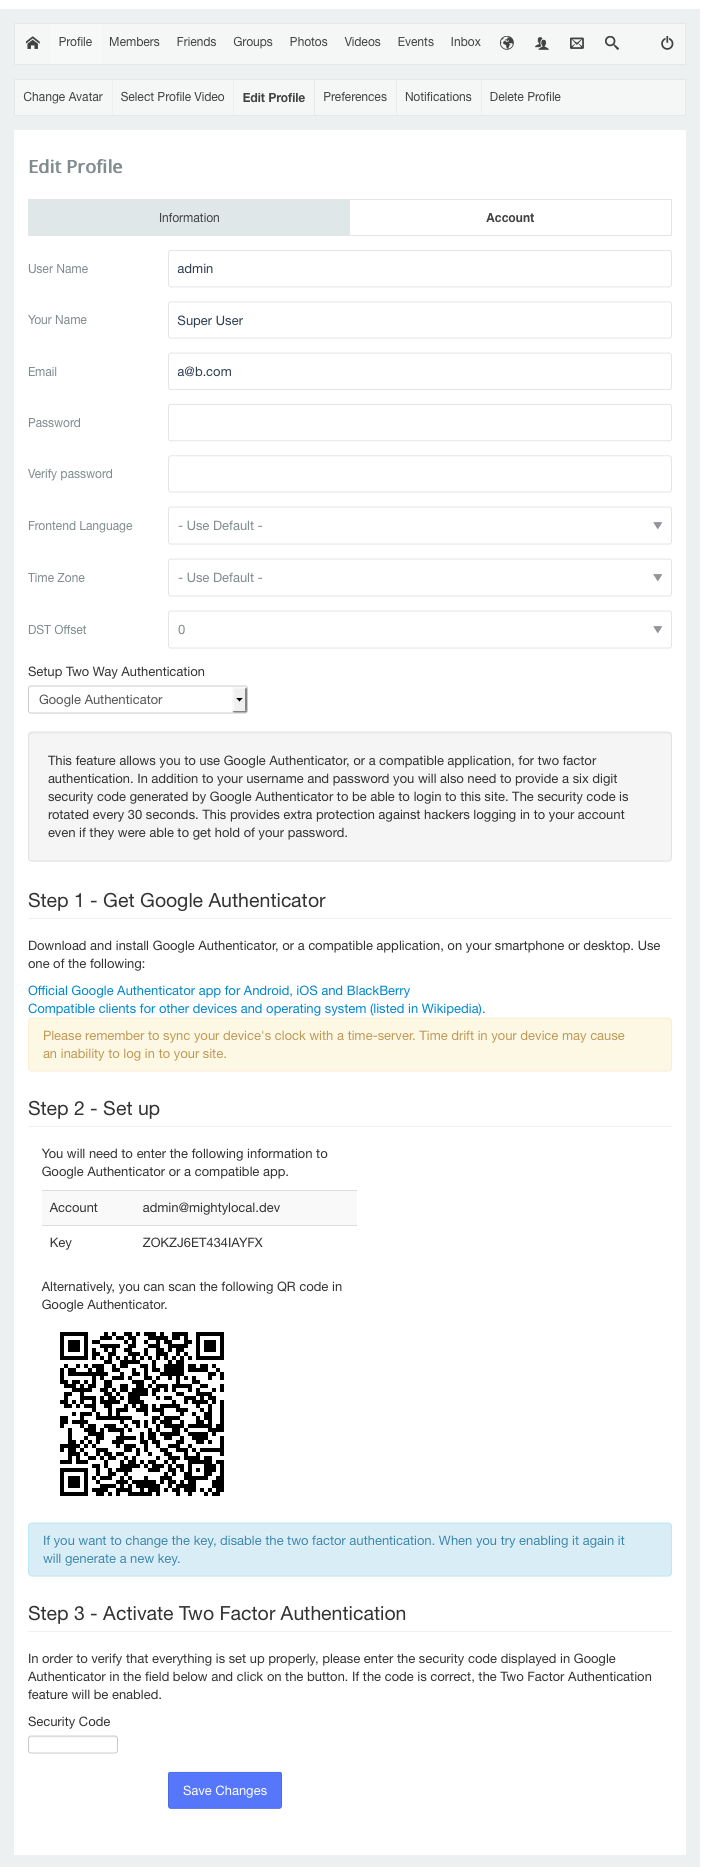 Two Factor Authentication Setup in JomSocial 4.1<br />Full image https://www.dropbox.com/s/3qyukitevoh60gx/tfa.png?dl=0